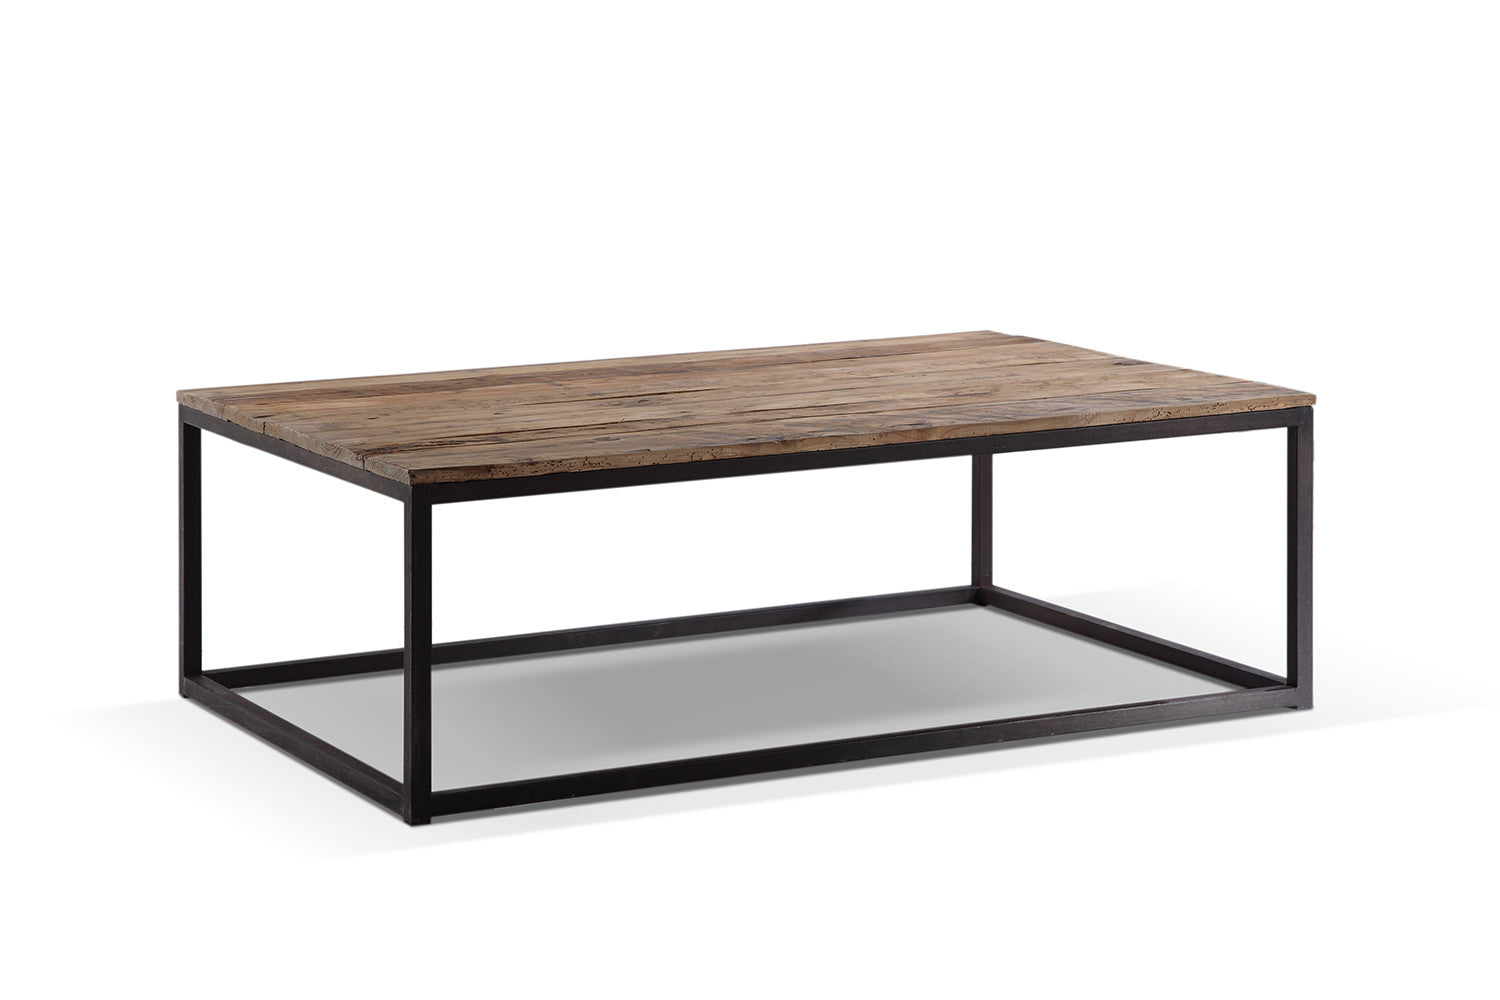 Table basse industrielle en m tal et bois rose moore - Table basse metal et bois ...